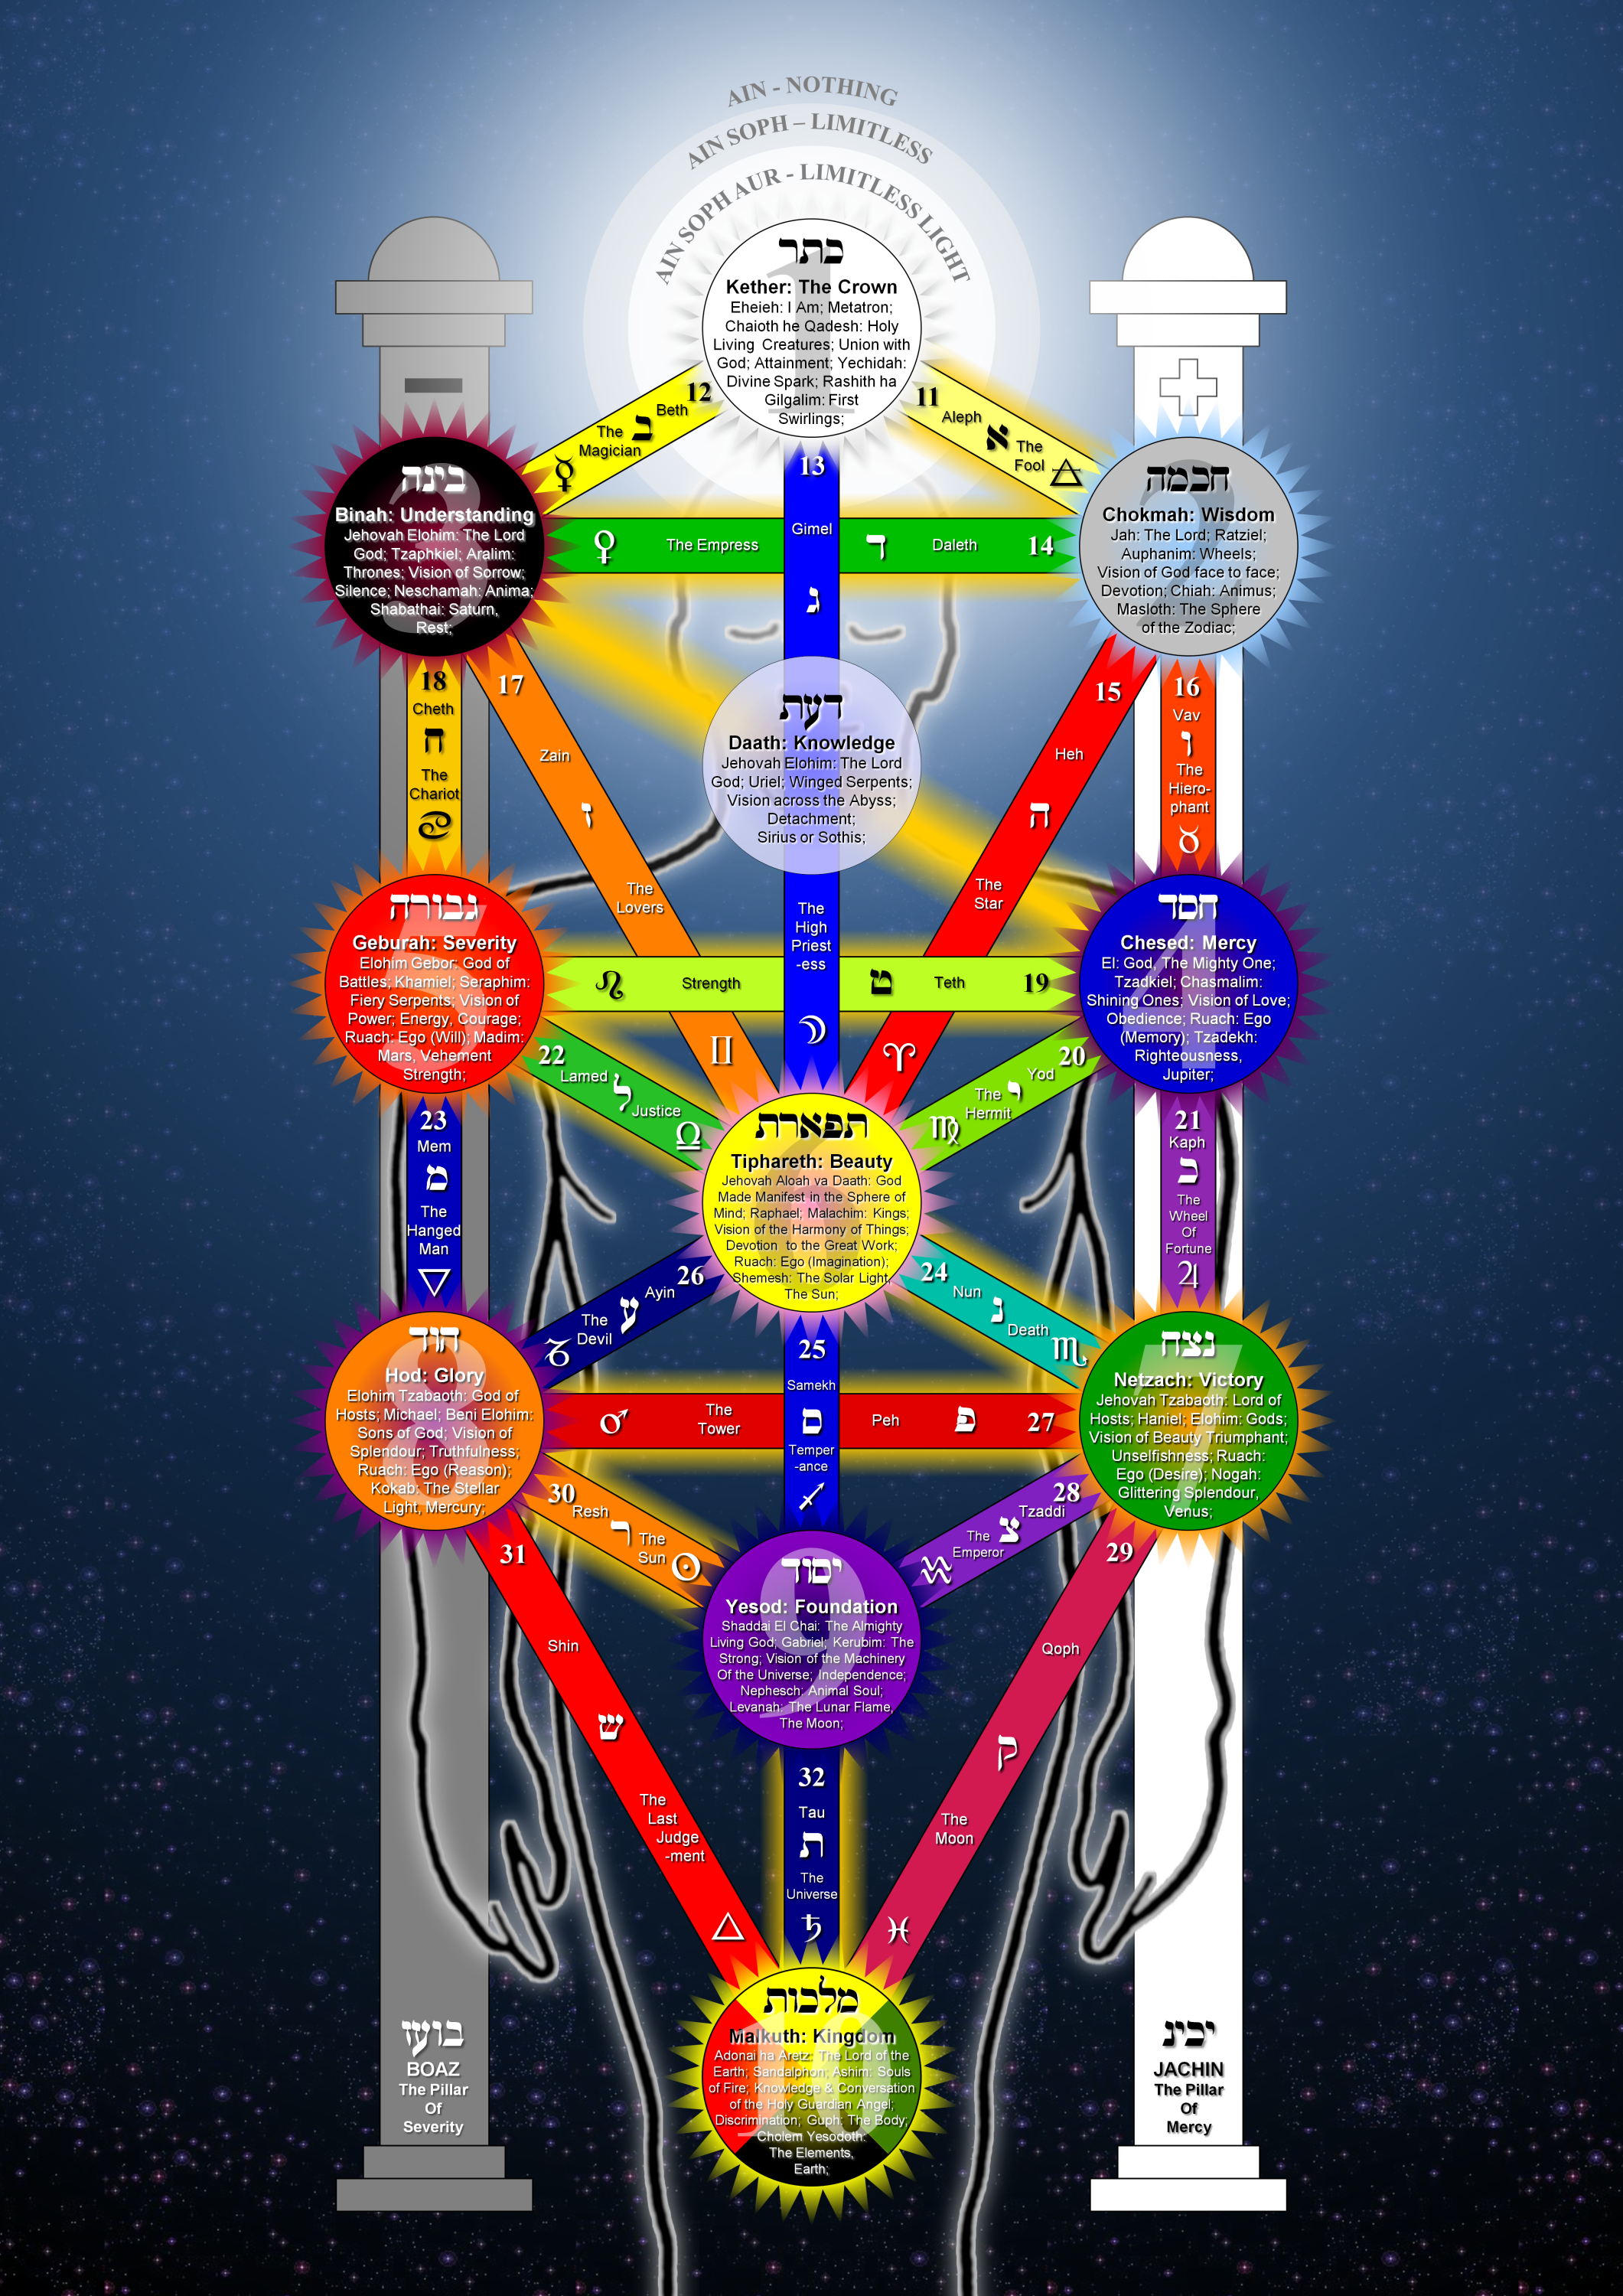 http://upload.wikimedia.org/wikipedia/commons/1/19/Tree_of_Life_2009_large.png